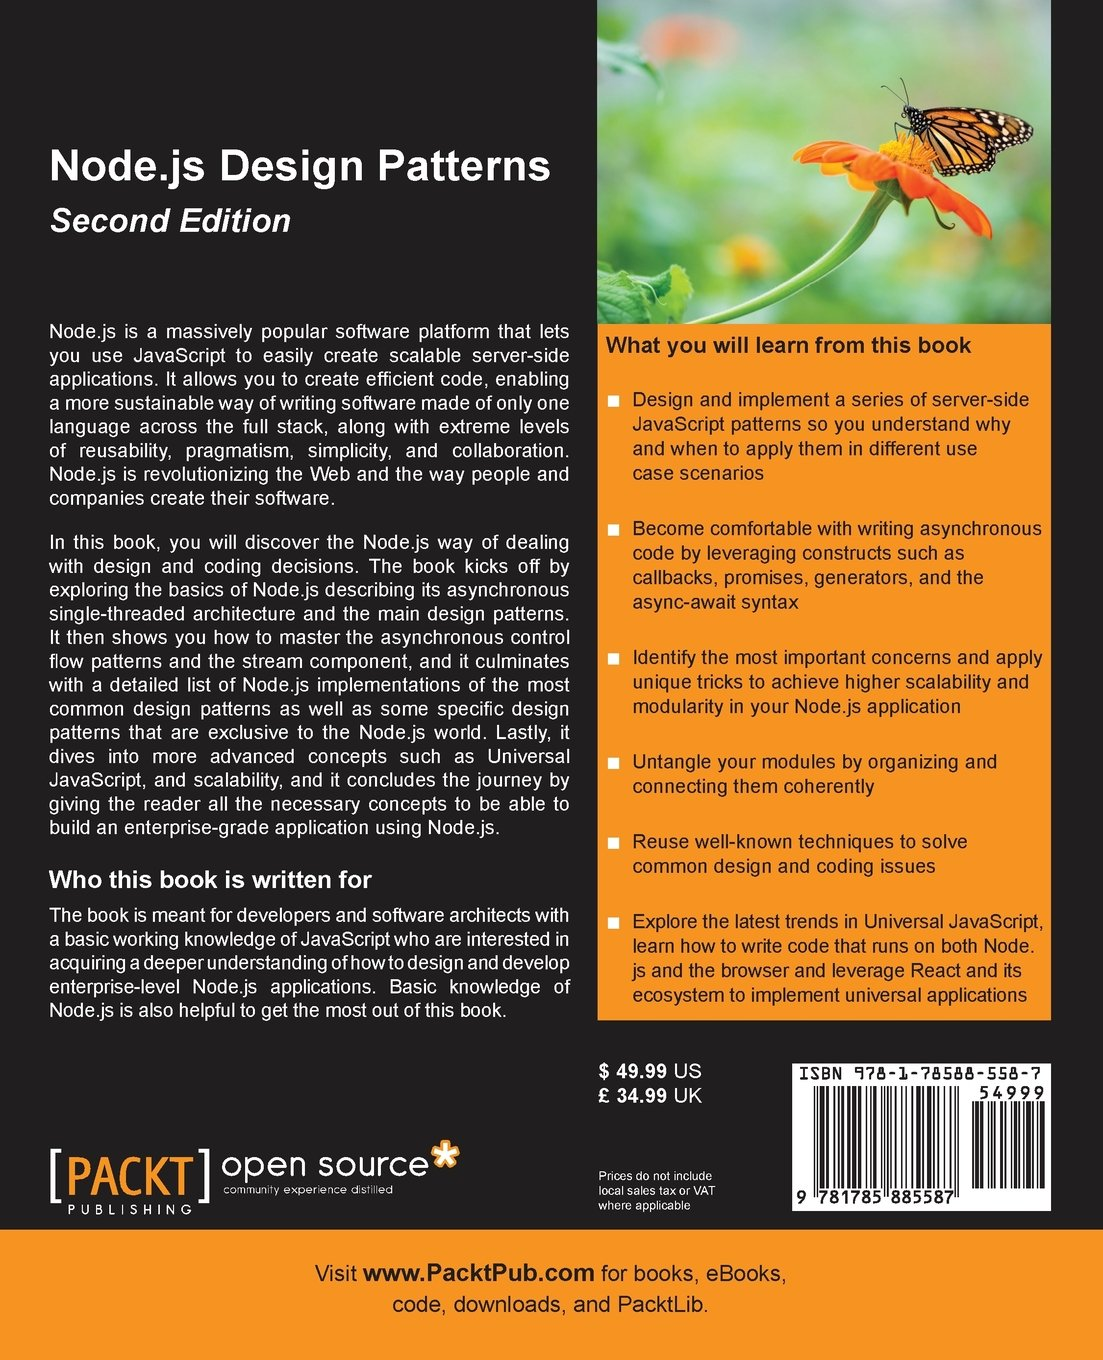 Buy nodejs design patterns book online at low prices in india js design patterns book online at low prices in india nodejs design patterns reviews ratings amazon fandeluxe Choice Image